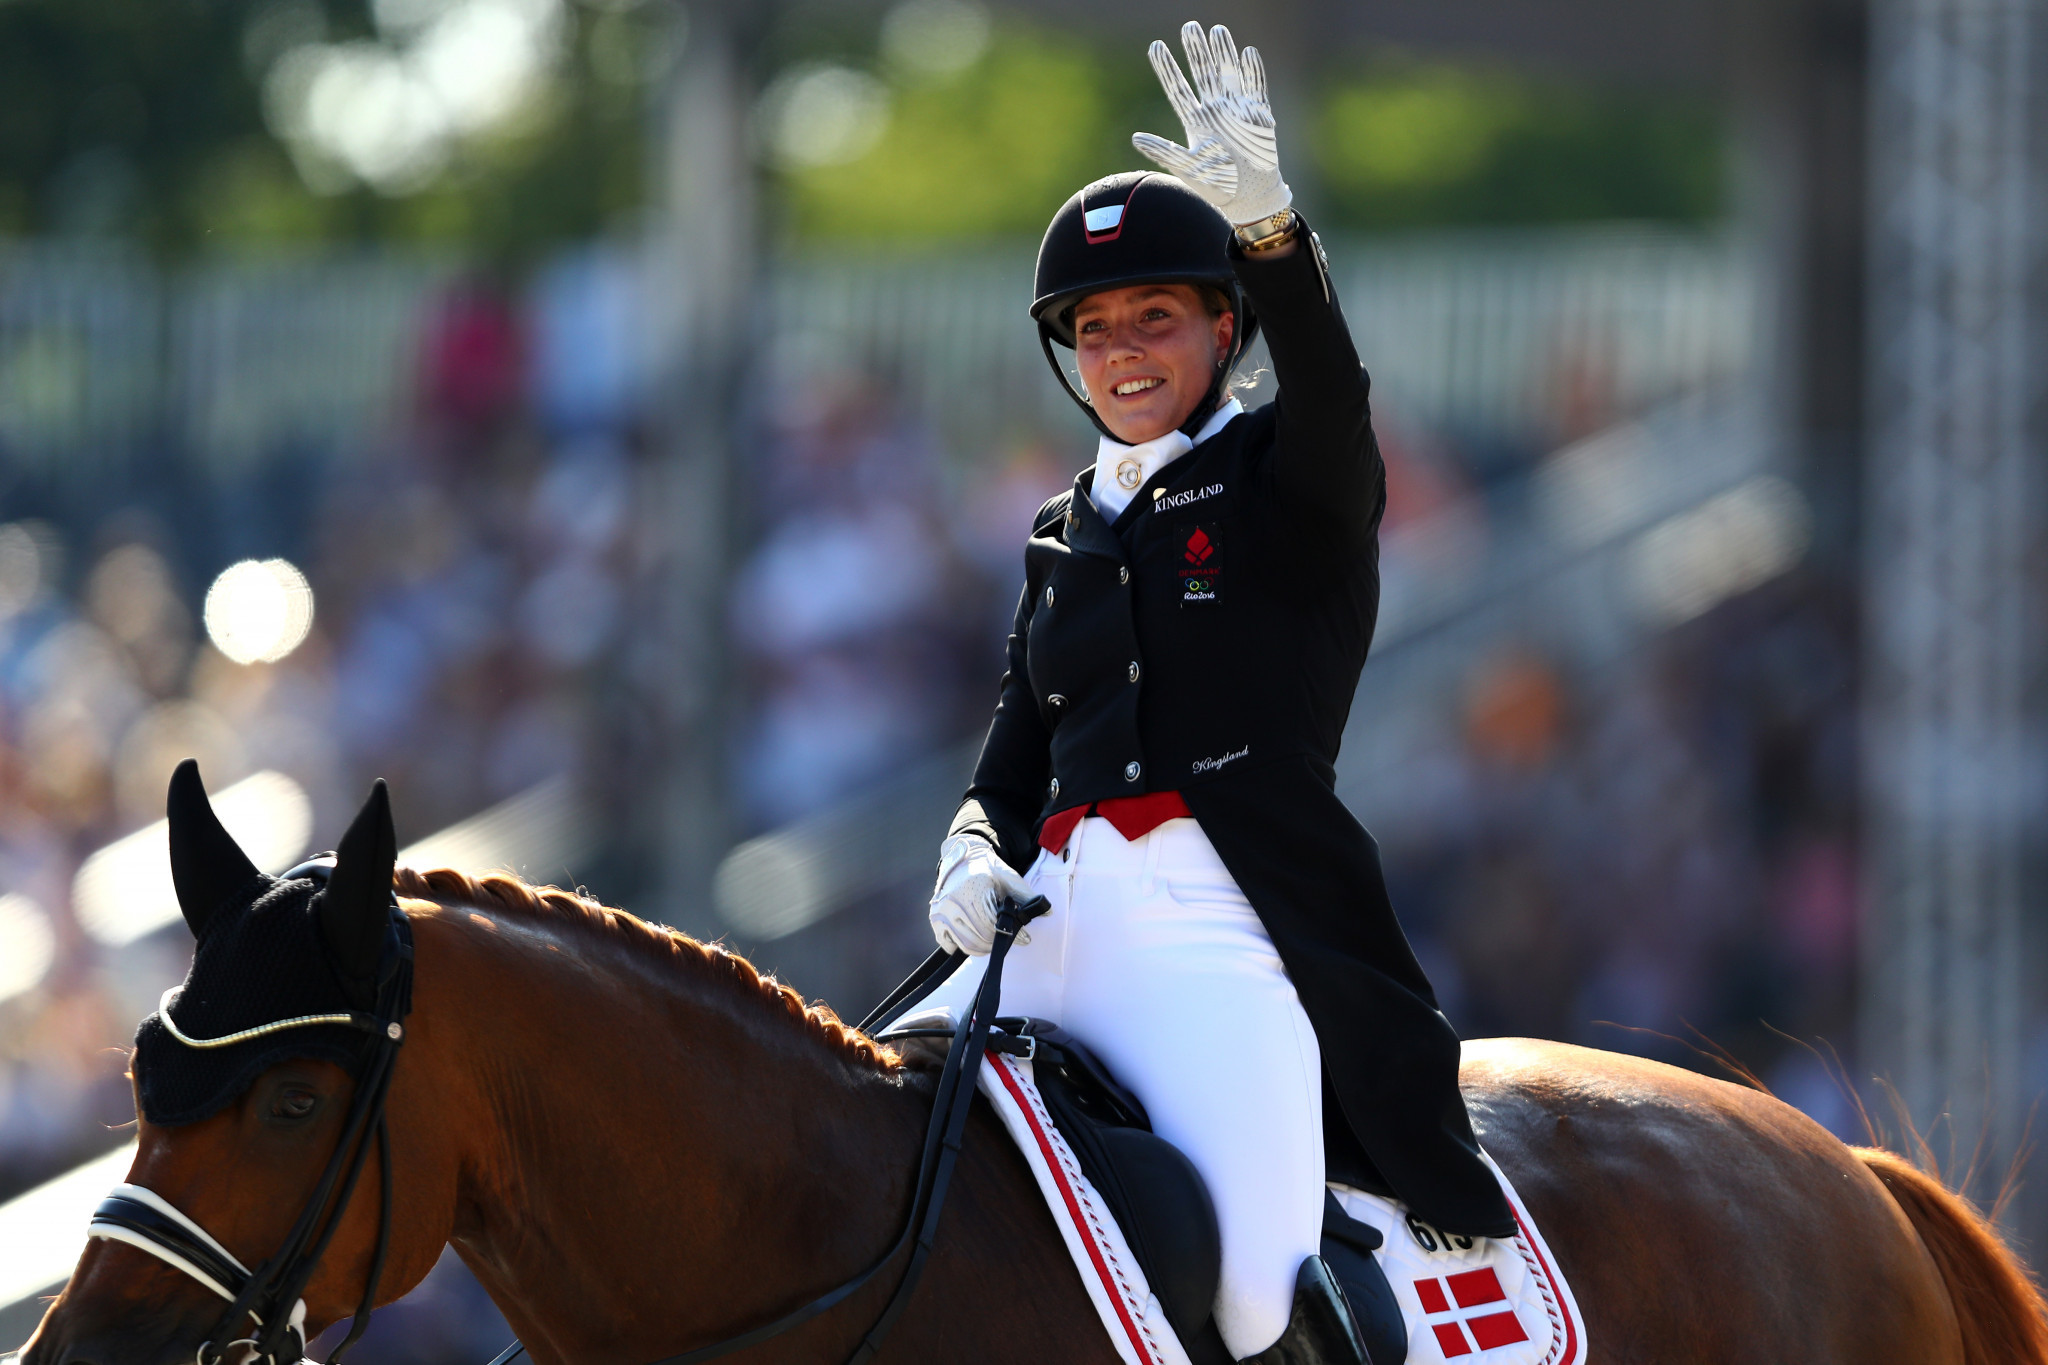 Dufour achieves personal best to win FEI Dressage World Cup in Gothenburg